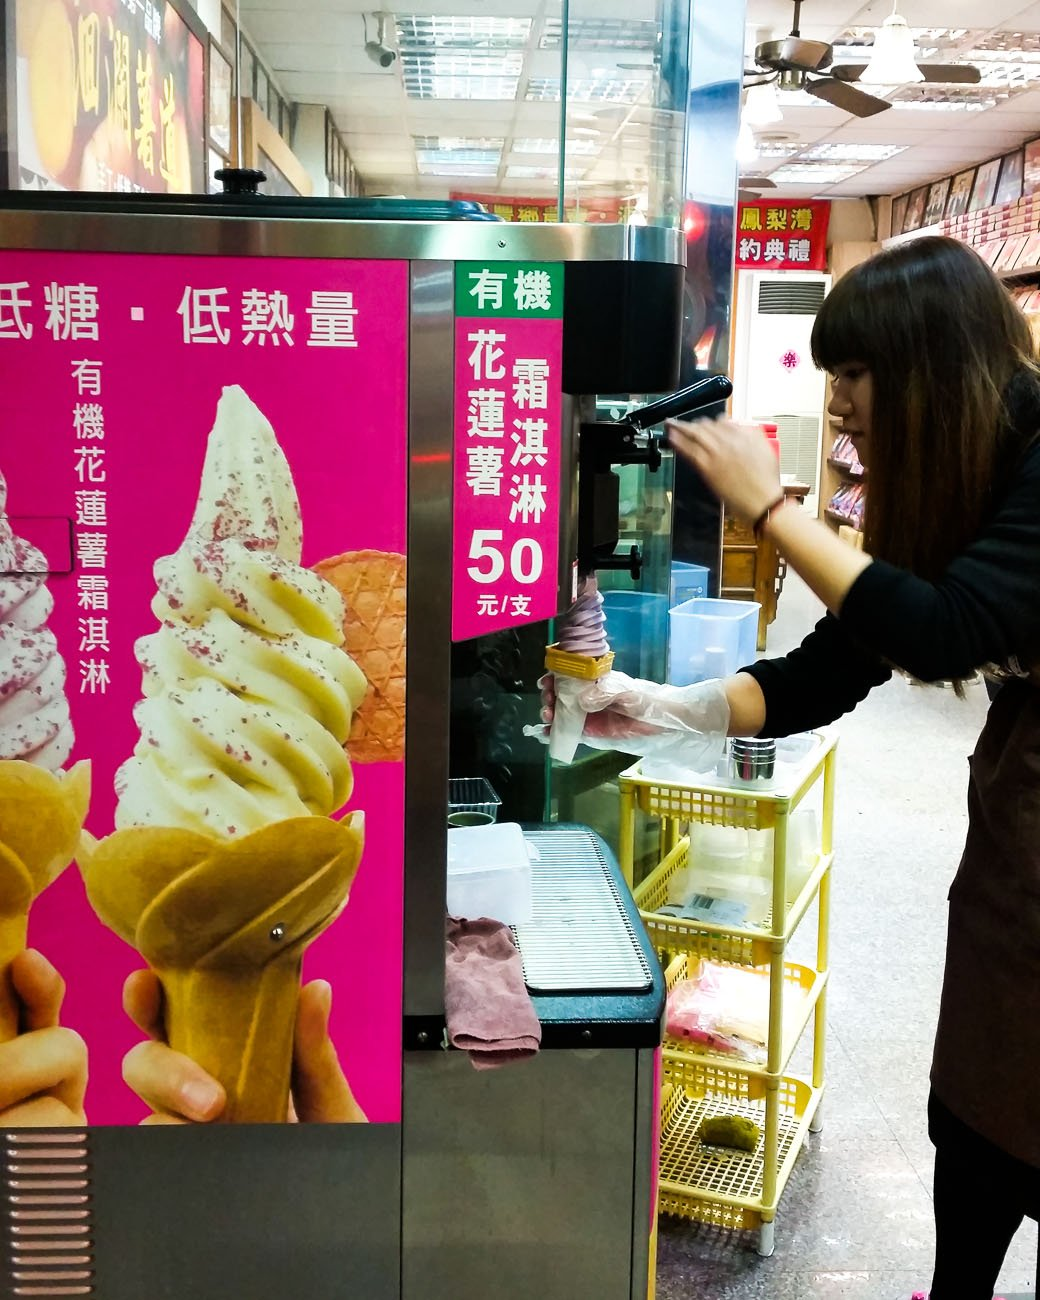 yam ice cream in hua lien (2)